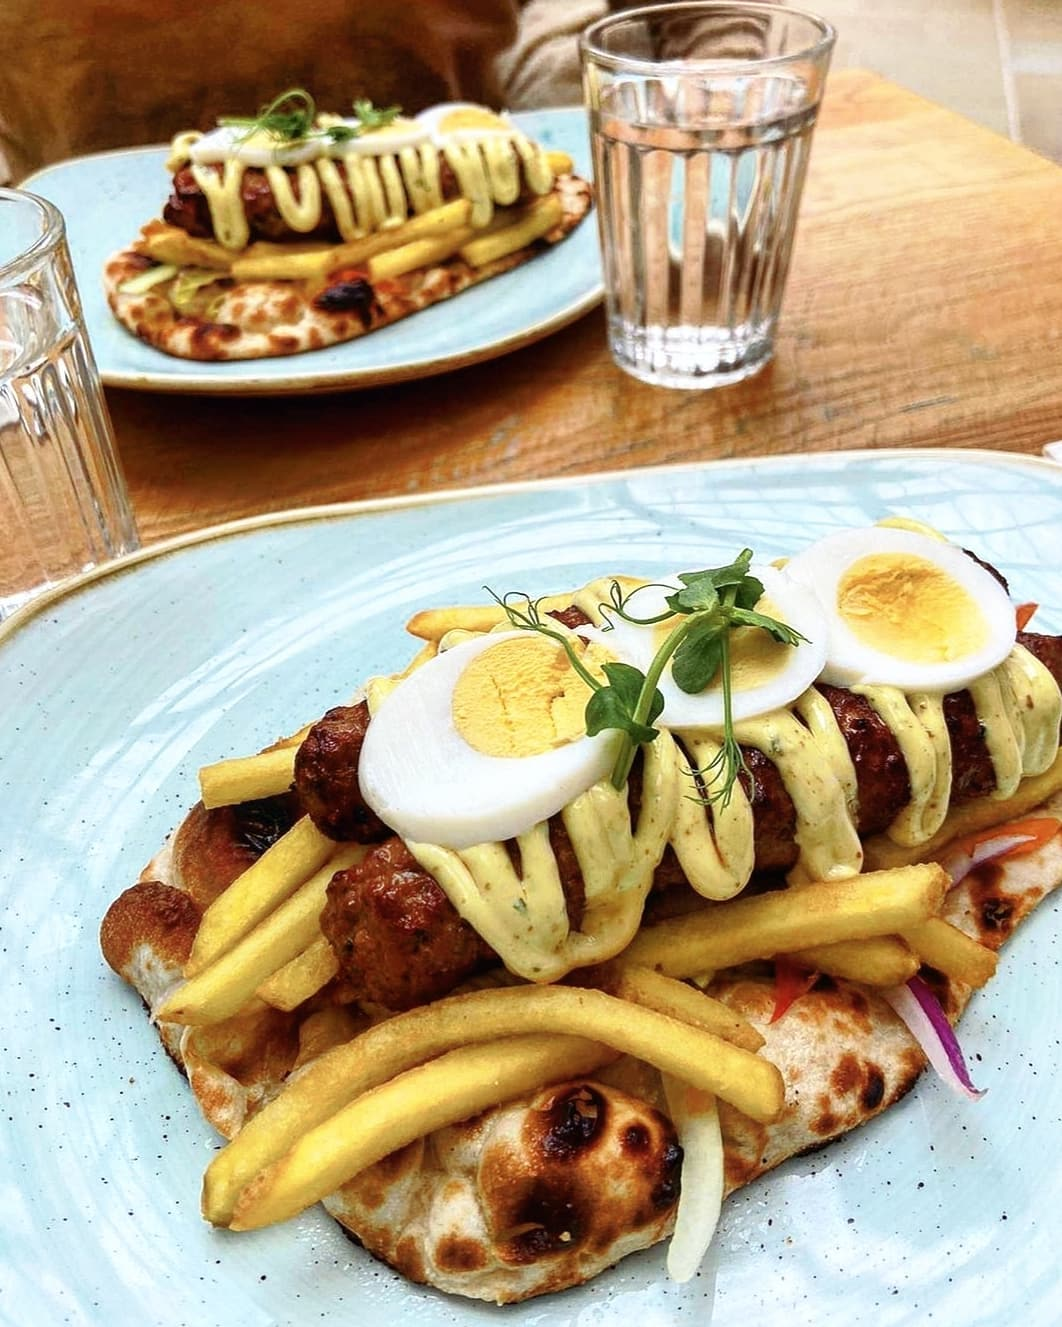 NEW MANC EATS featuring sausage roll-steak bake pies and a new Italian restaurant, The Manc